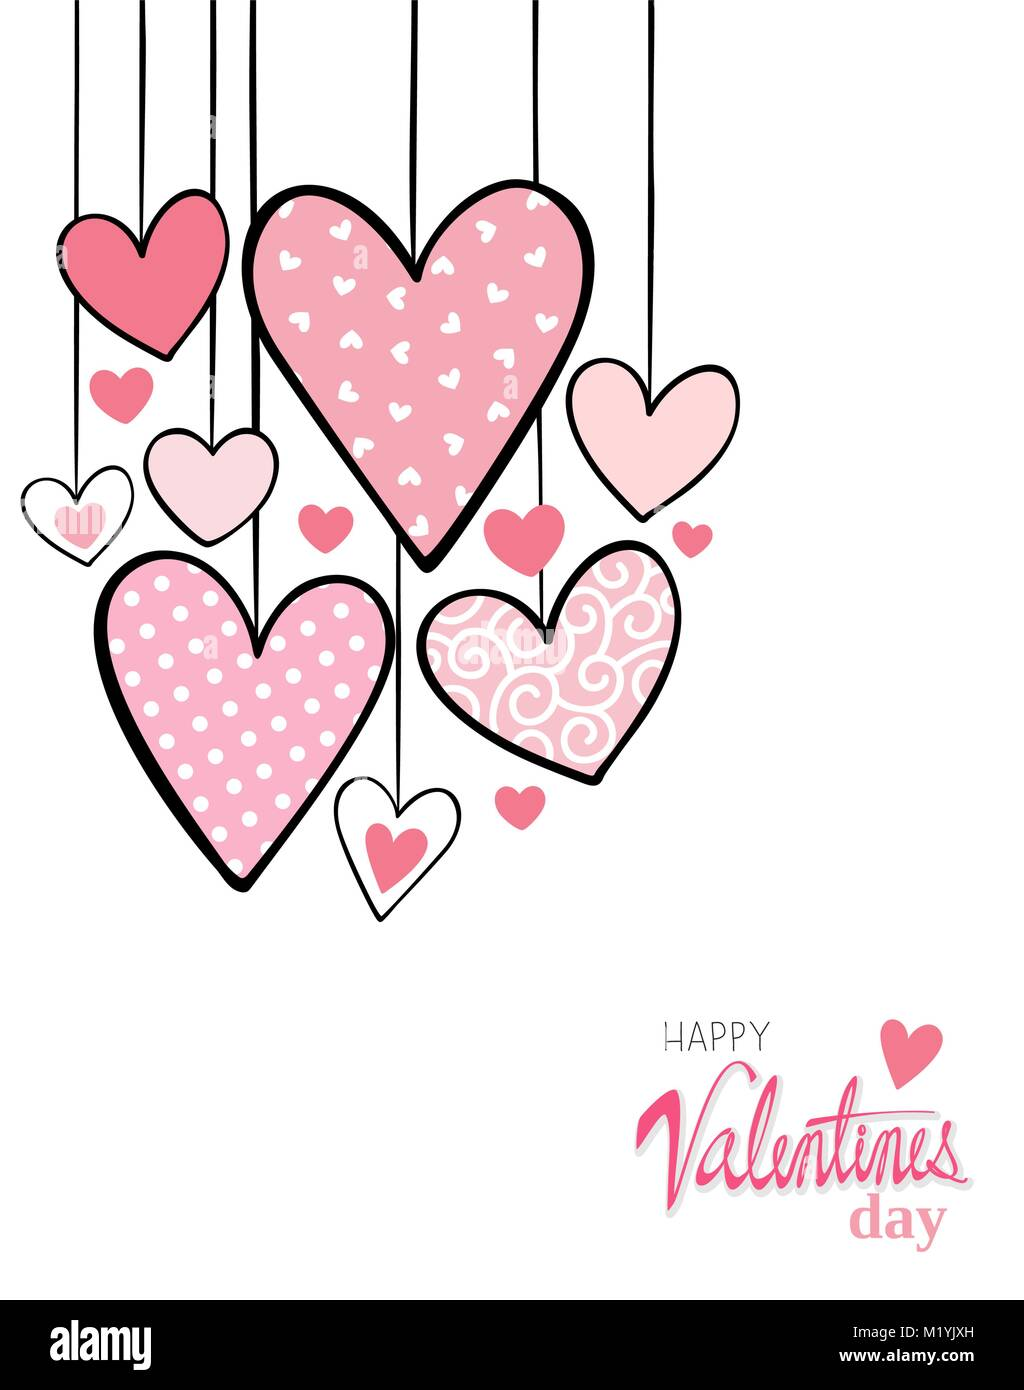 Valentines Day Card Background With Cute Hanging Hearts And Text On